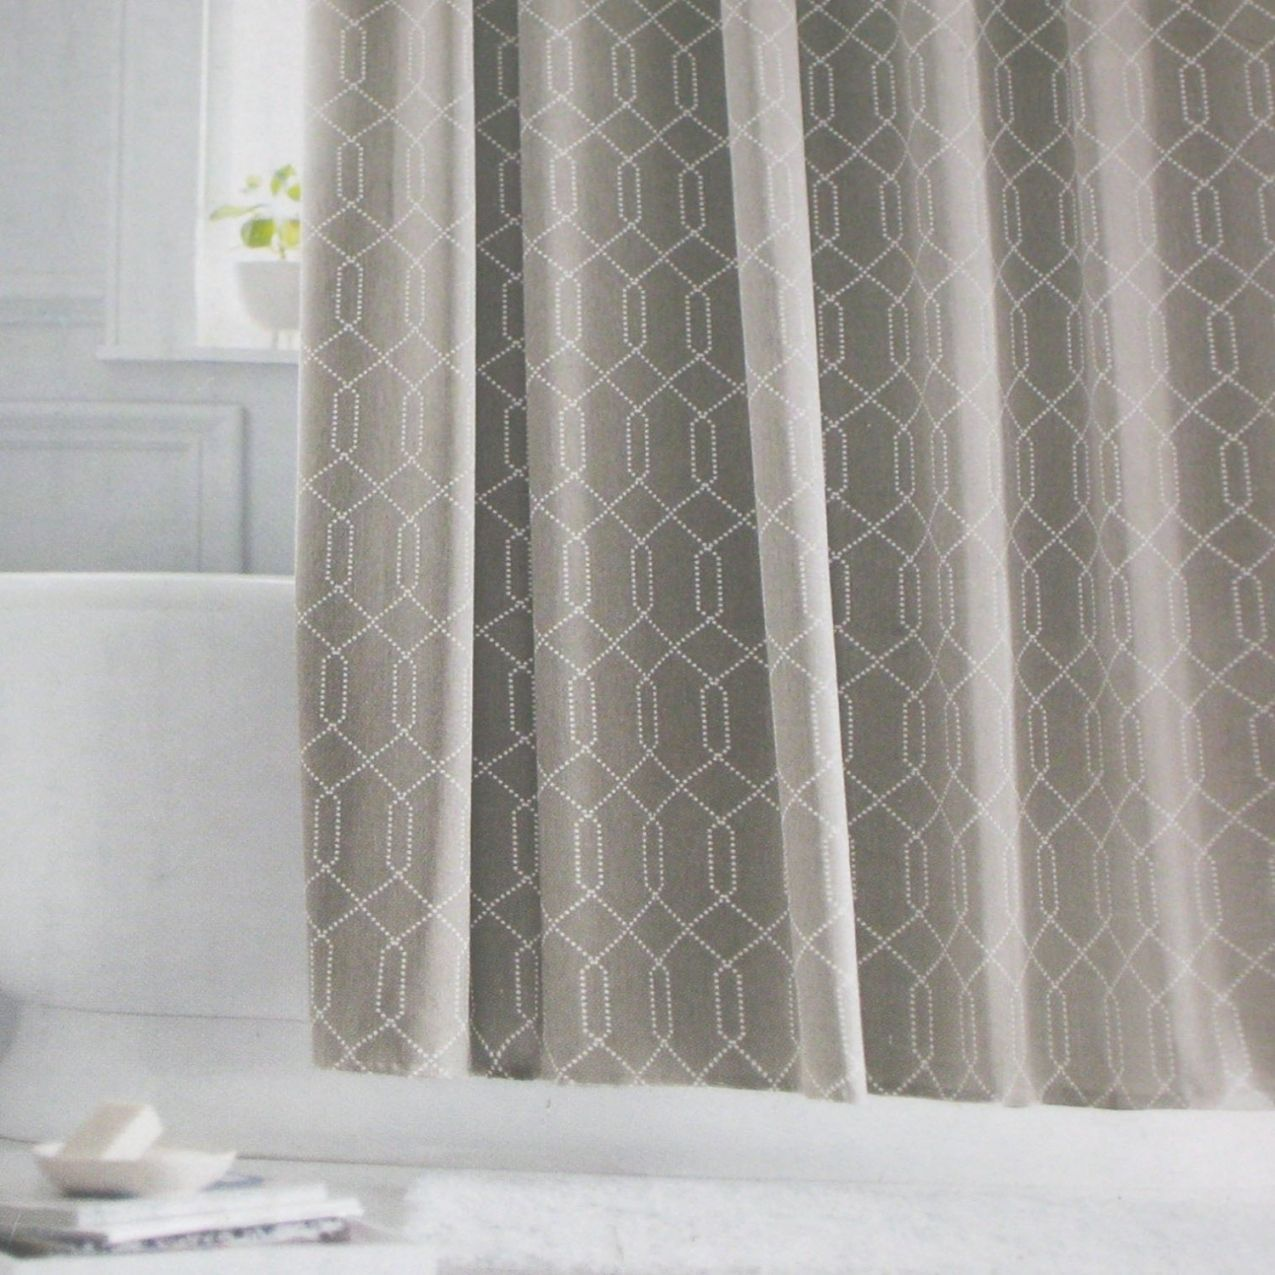 Most Amazing Extra Long Shower Curtains At Target Wc09doi87 Long